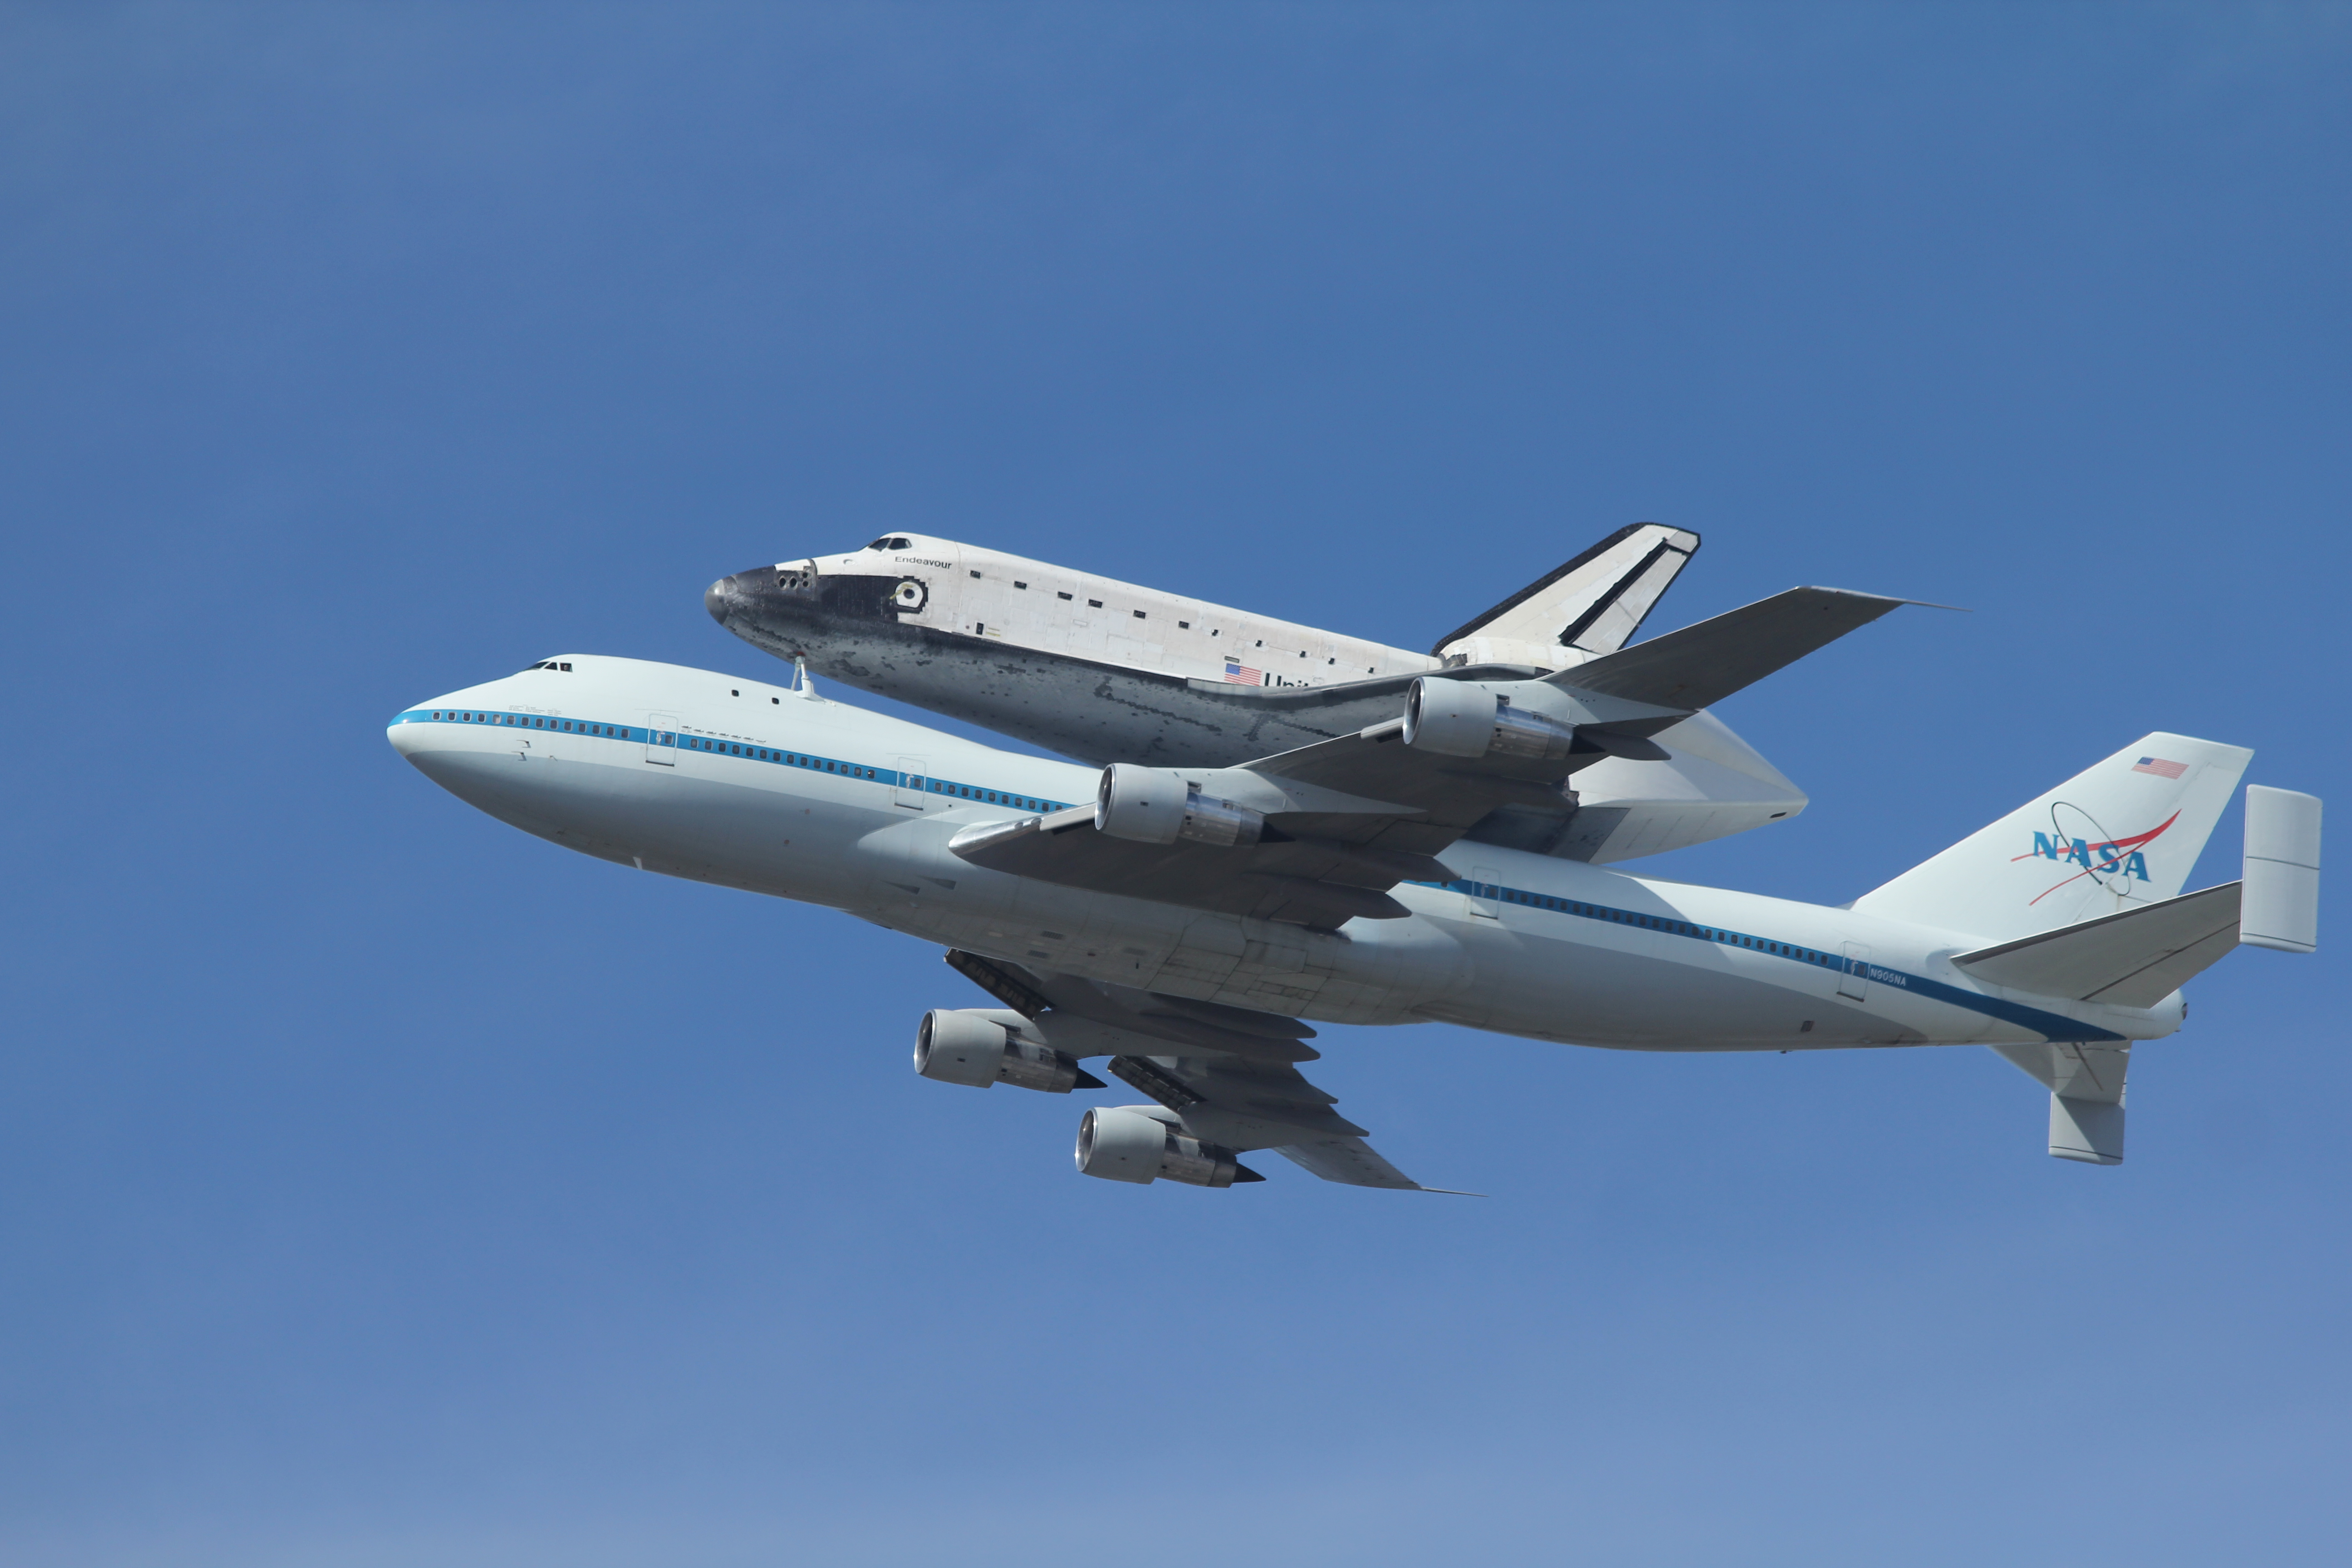 NASA Space Shuttle In Flight - Pics about space